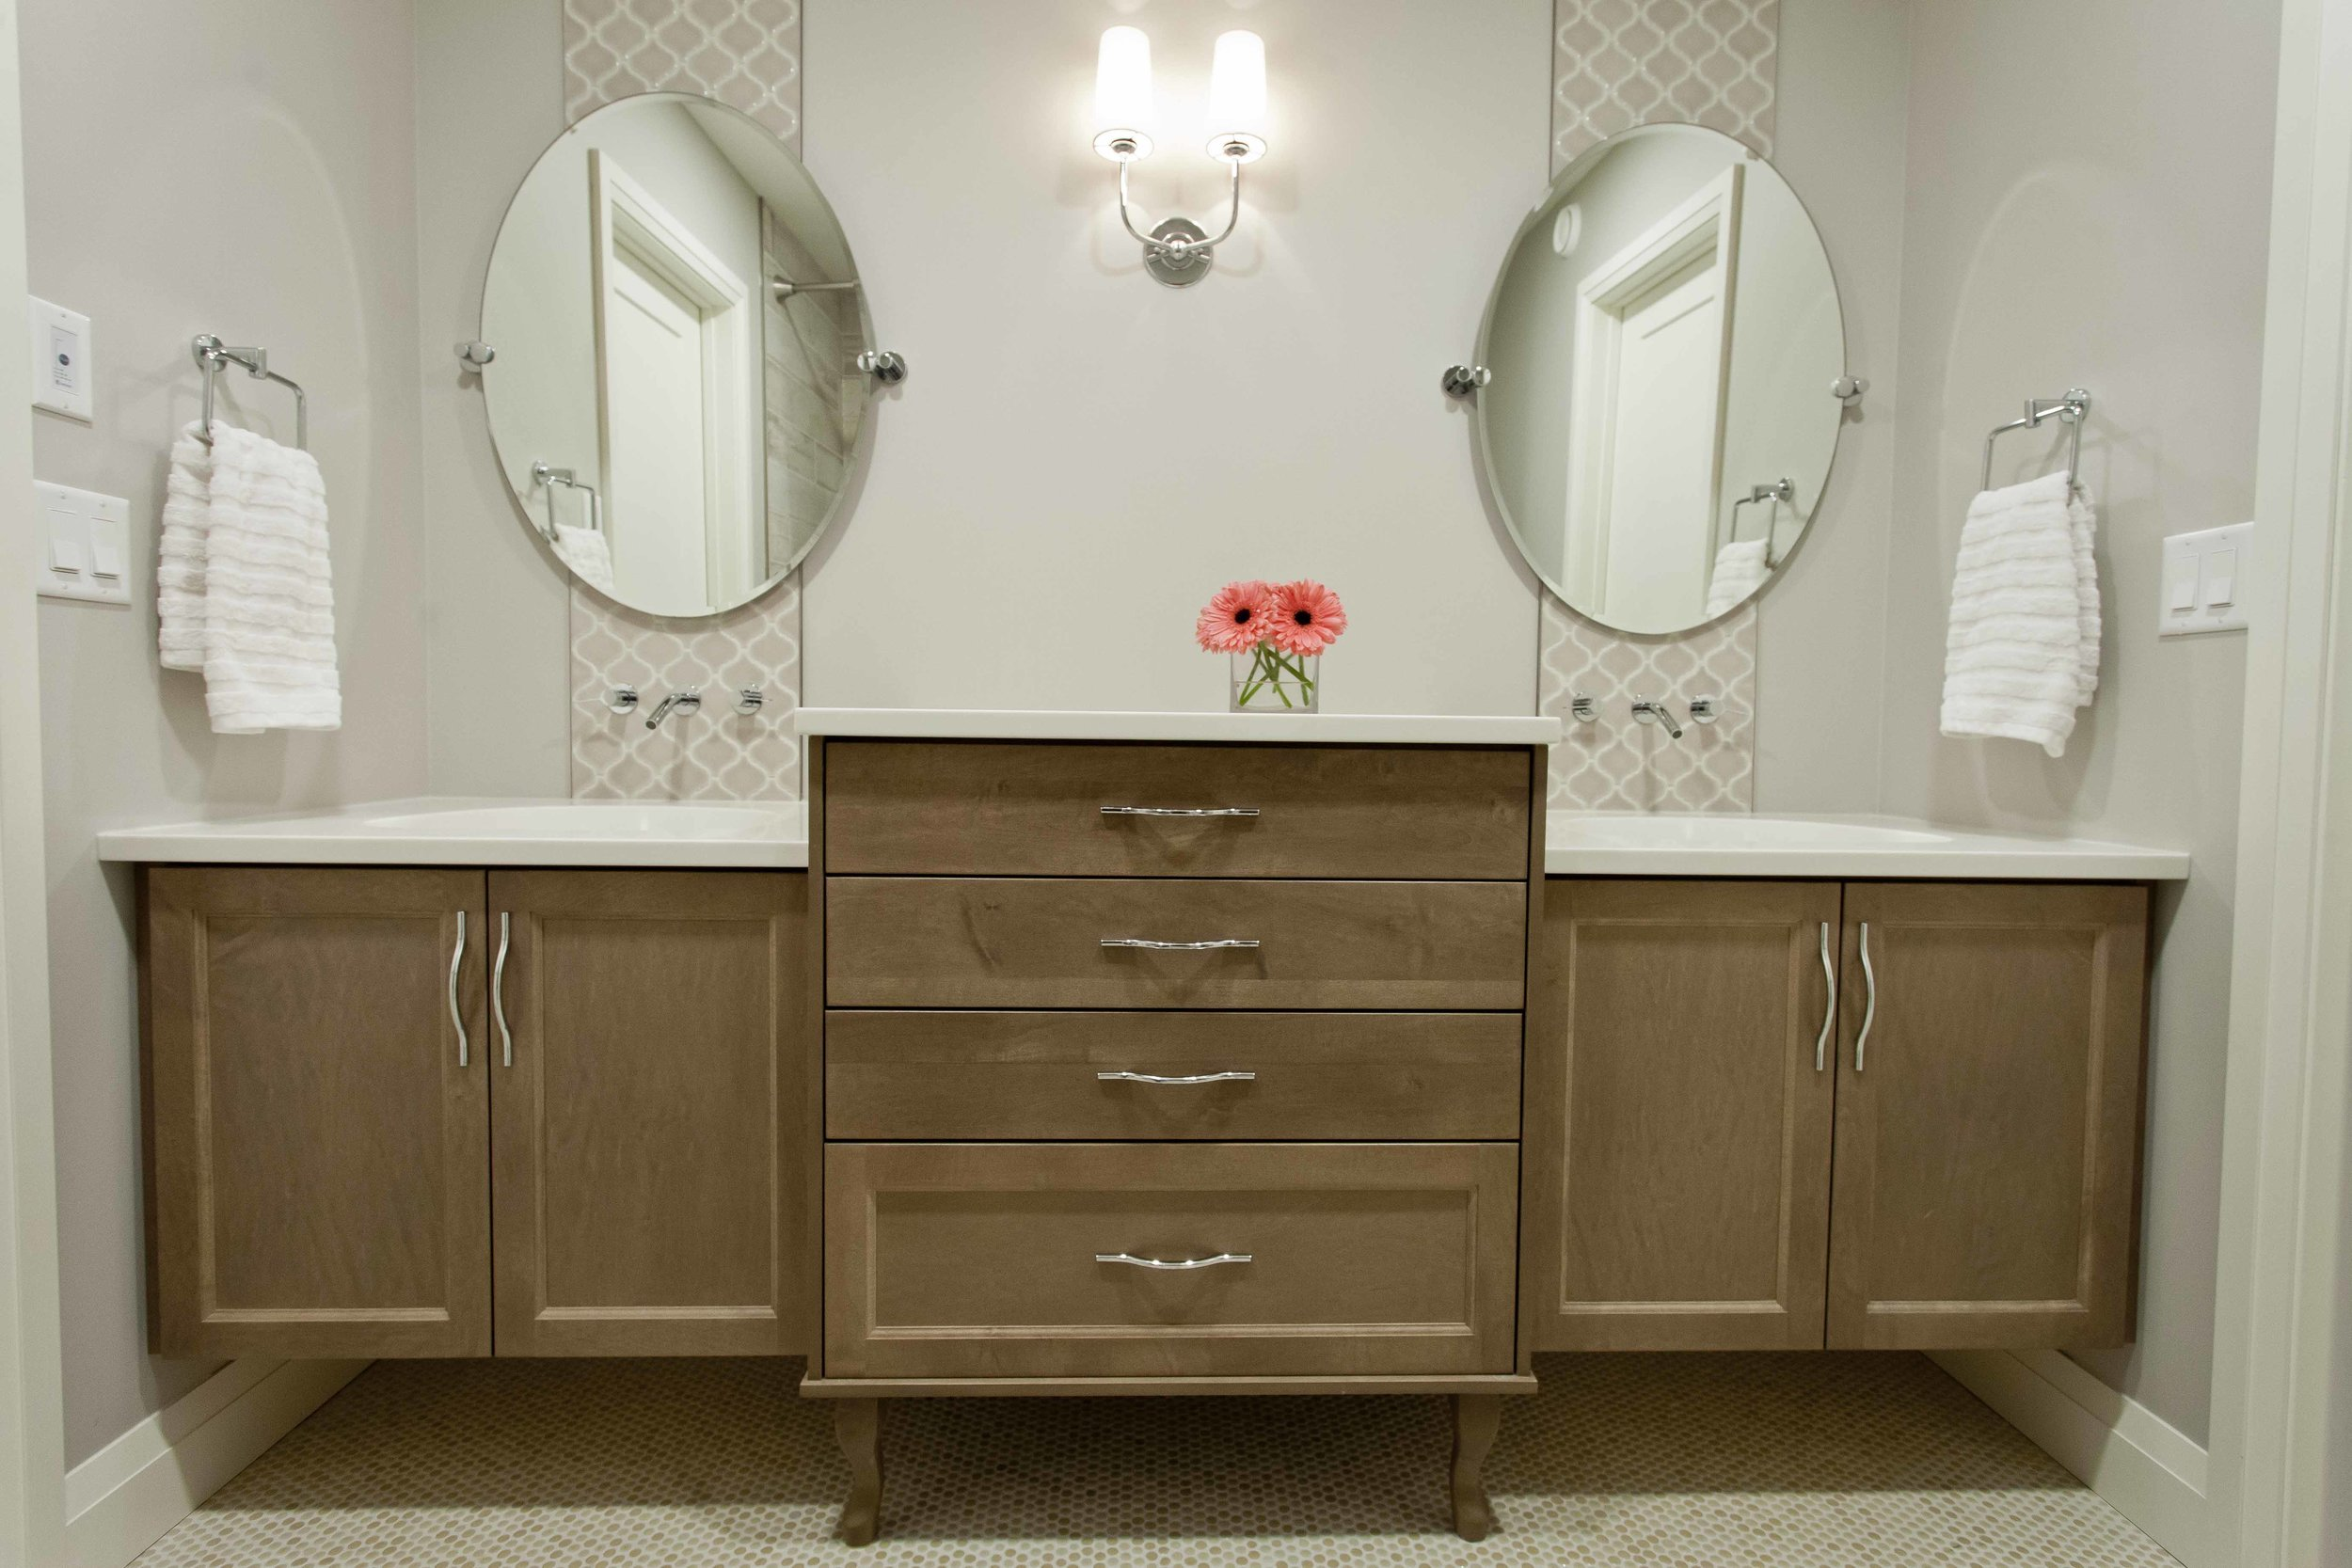 Workshop Cabinets & Design Camrose Alberta Interior Design and Cabinetry Bathroom Design Jack and Jill Custom Vanity and Sink